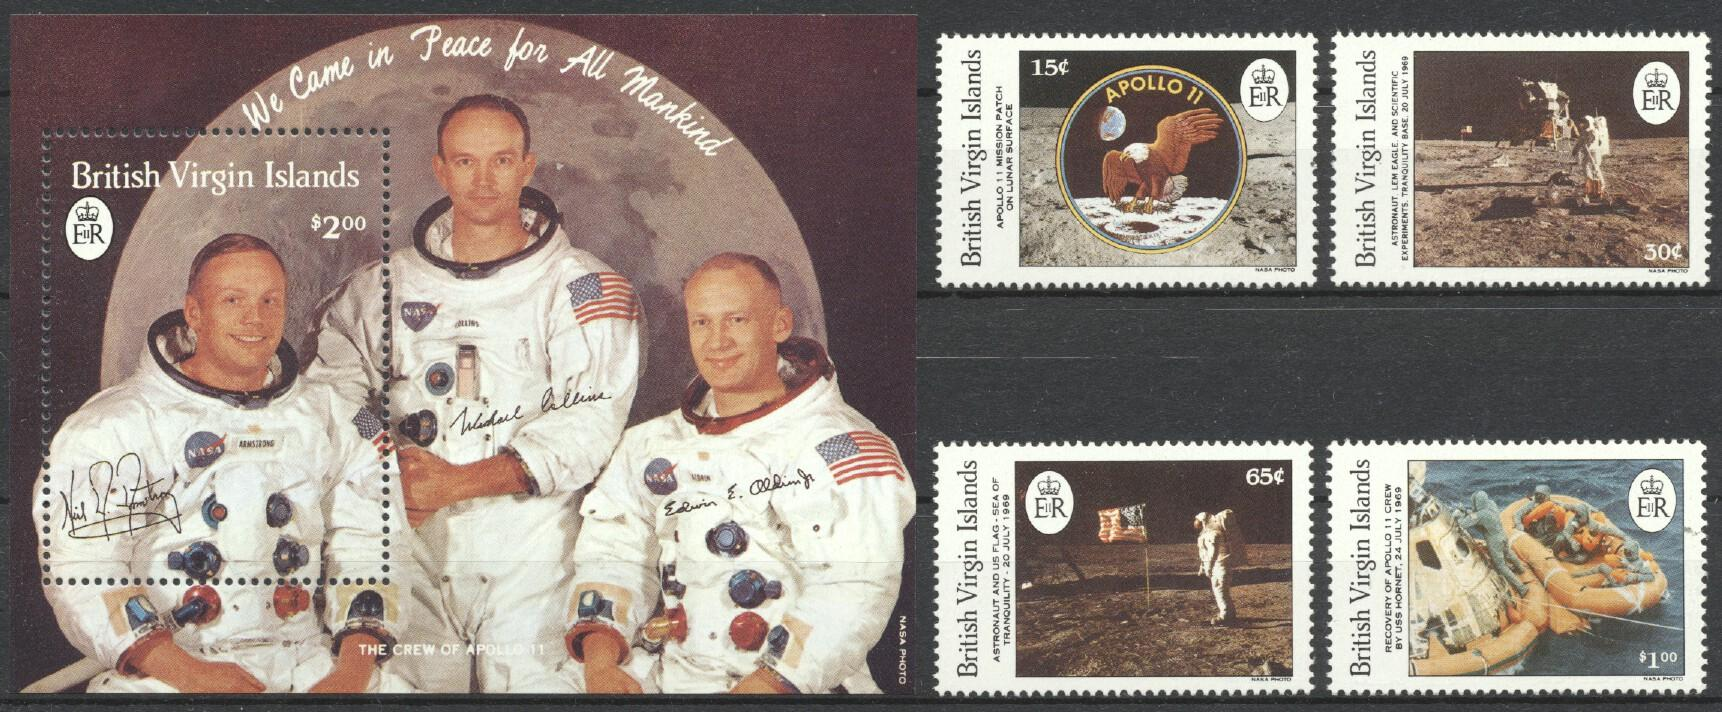 Stamps with Space from Virgin Islands (British) (image for product #212067)